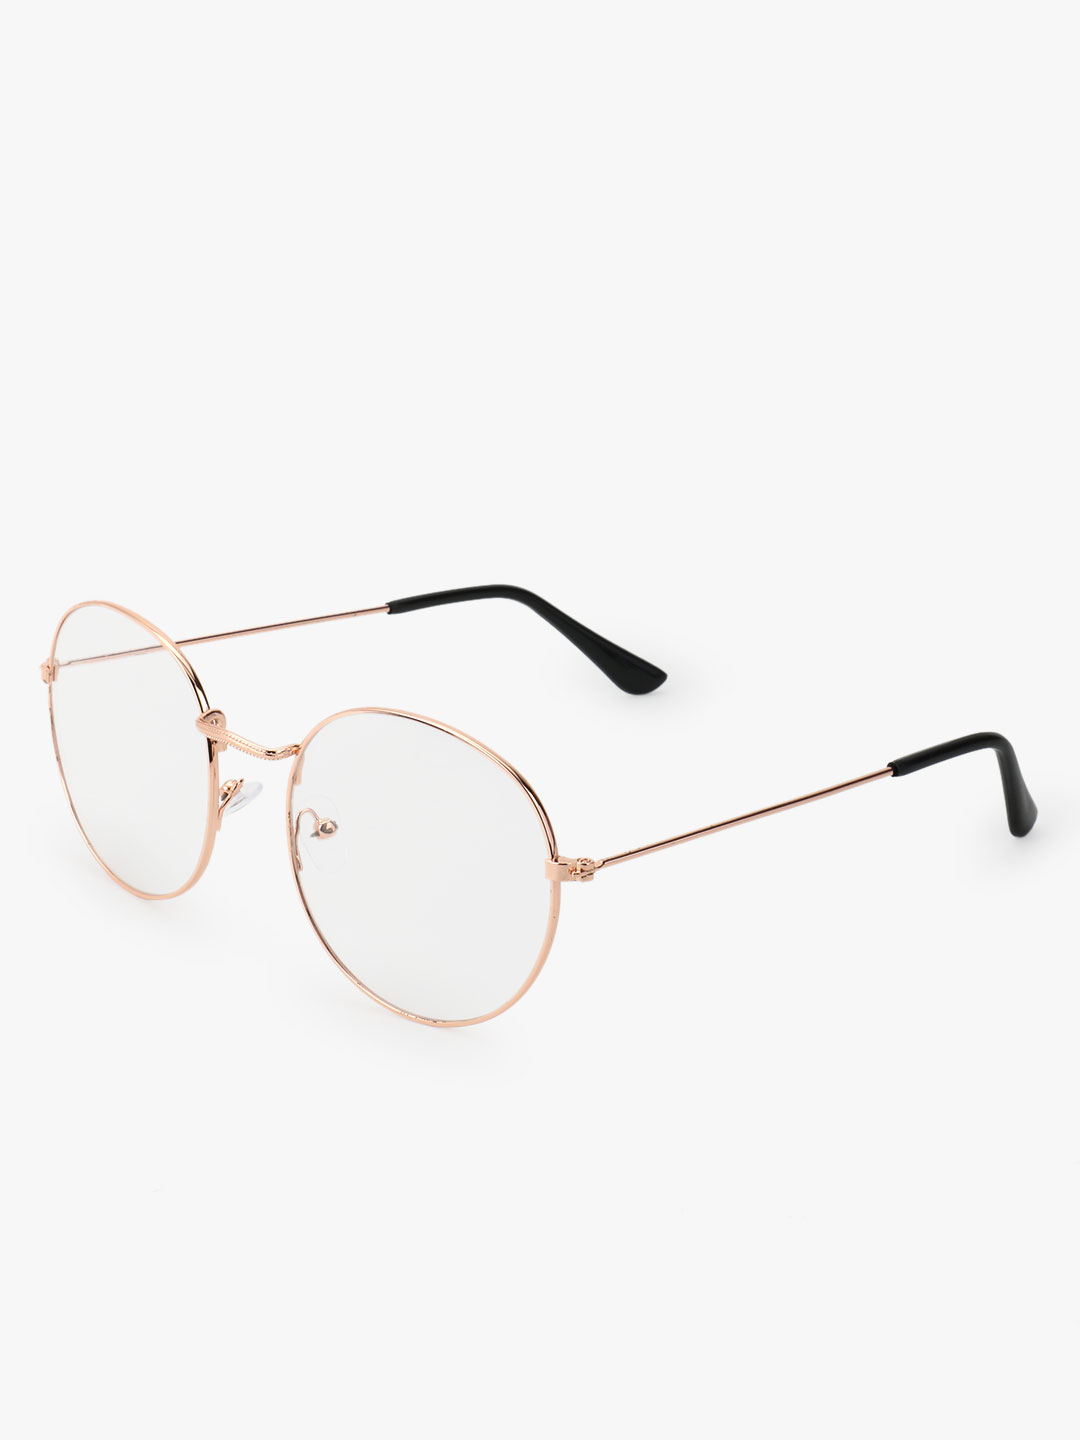 Pataaka Gold Clear Lens Round Sunglasses 1